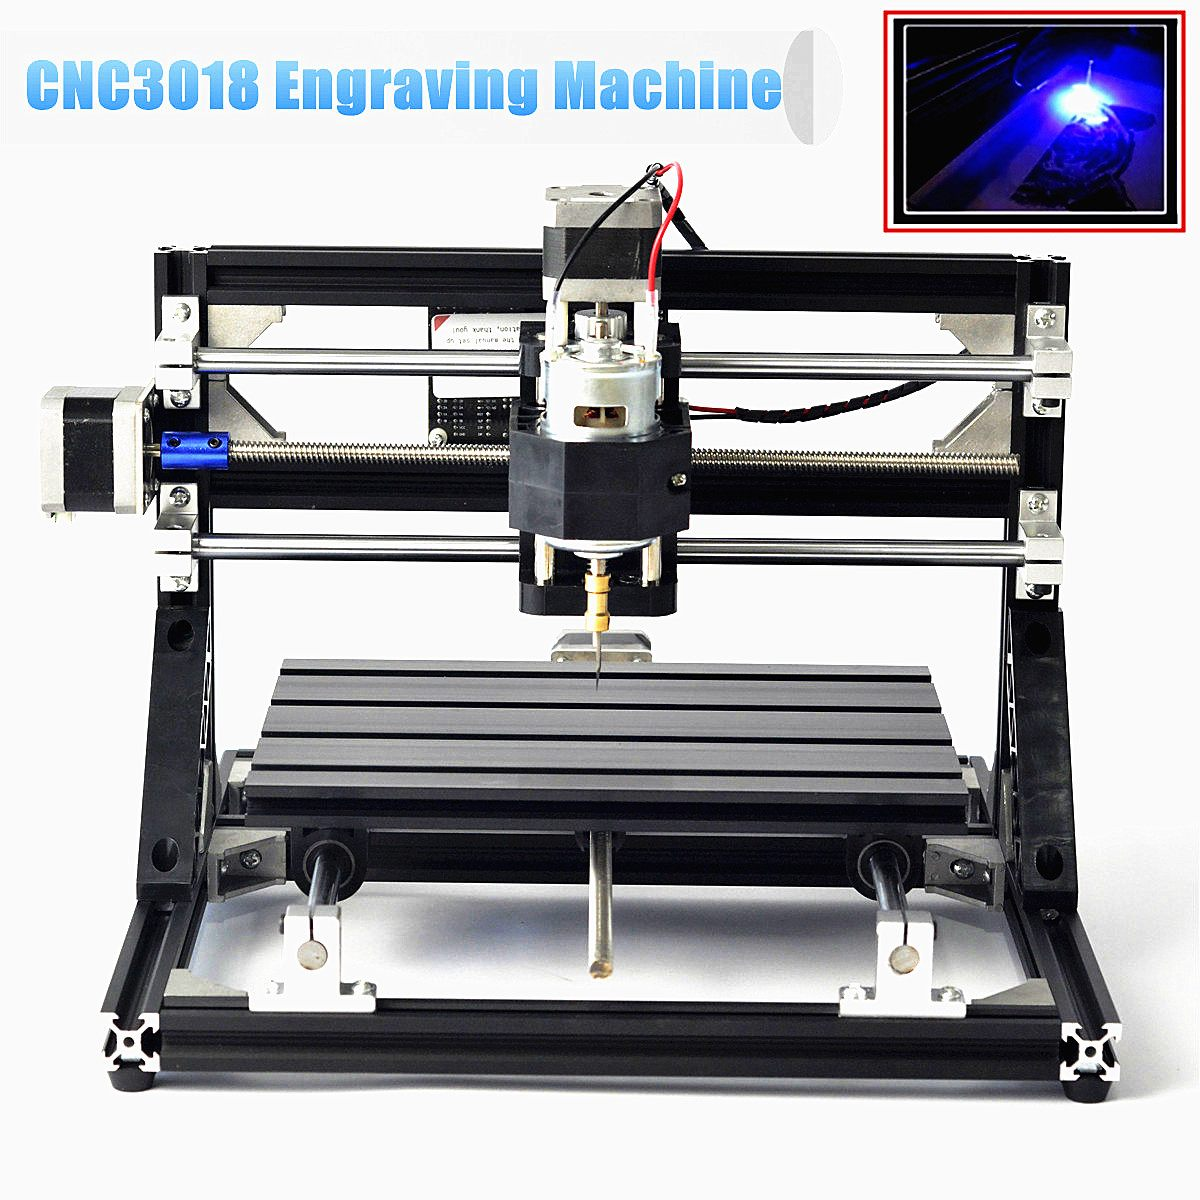 110V -240V CNC 3018 Engraving Machine Wood Router Woodworking Machinery Carving Machine or with 5500mW Laser Head Self Assembly110V -240V CNC 3018 Engraving Machine Wood Router Woodworking Machinery Carving Machine or with 5500mW Laser Head Self Assembly